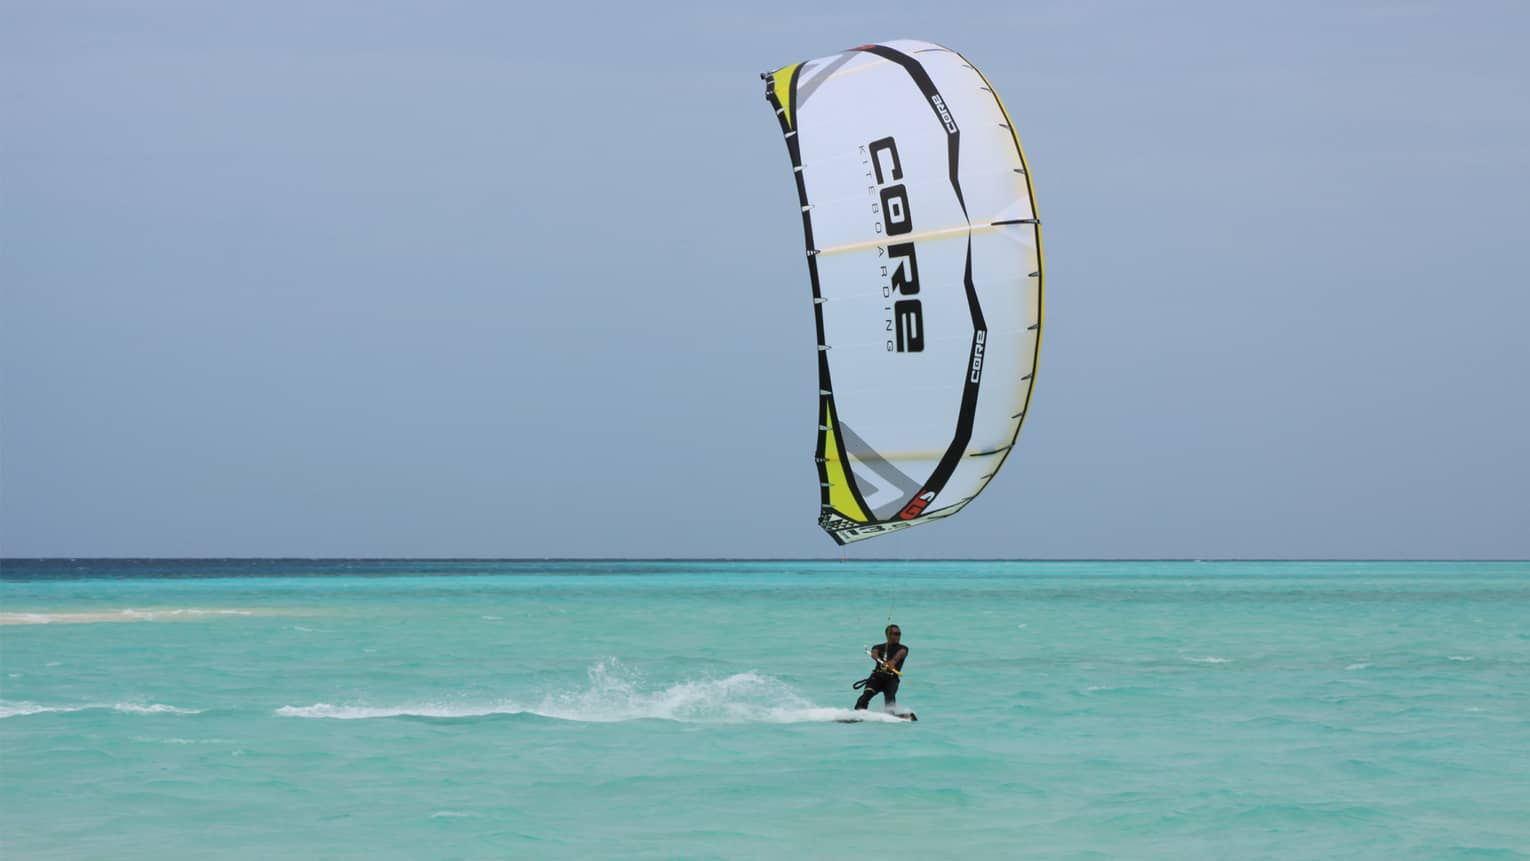 Windsurfer on blue ocean